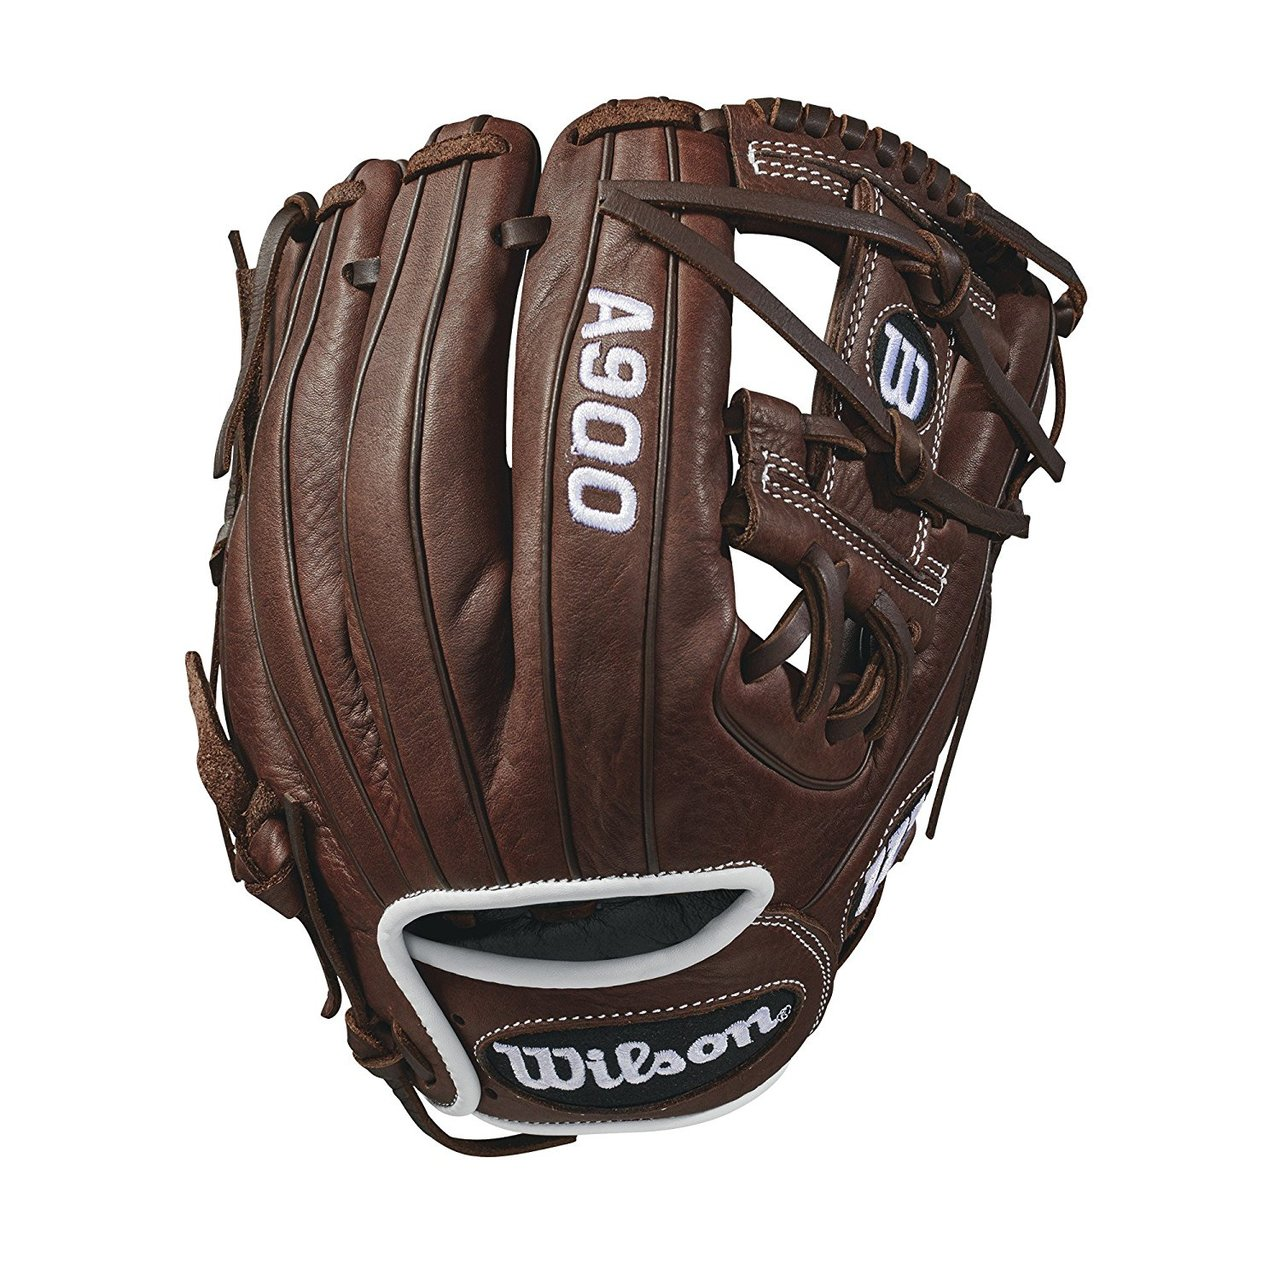 wilson-2018-a900-baseball-glove-11-5-pedroia-fit WTA09RB18115PF-RightHandThrow Wilson 887768593889 Wilson youth baseball gloves are intended for a younger more advanced